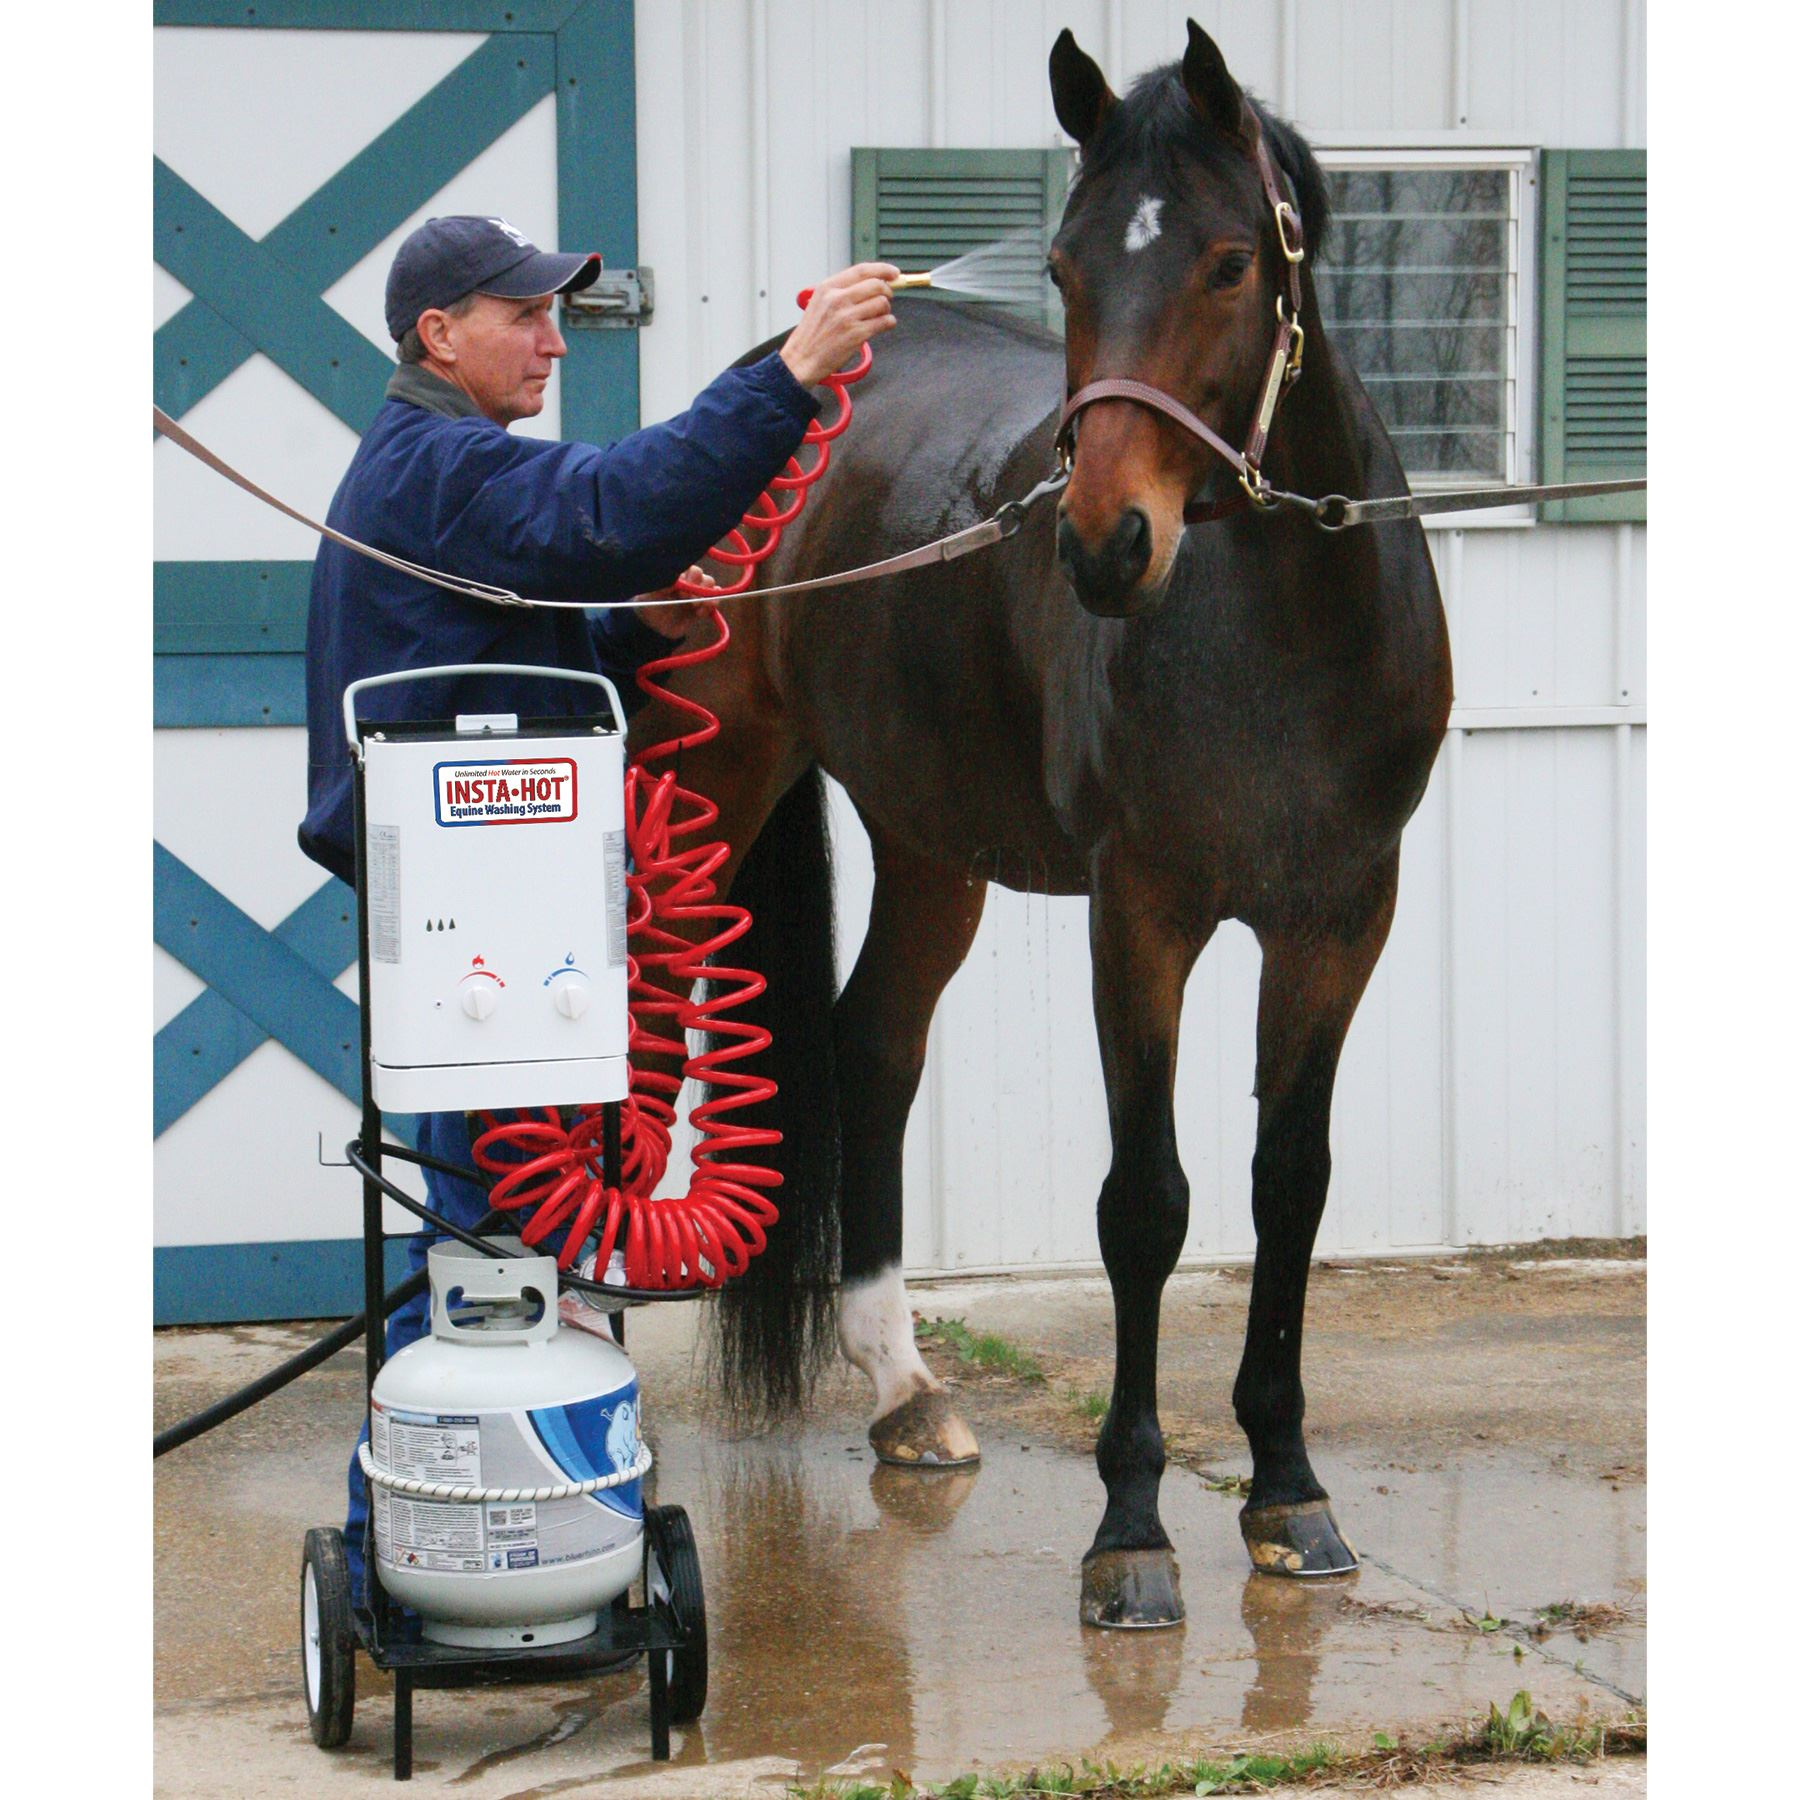 Hot Water Heater Accessories Insta Hot Equine Portable Washing System 3 Gems Tack